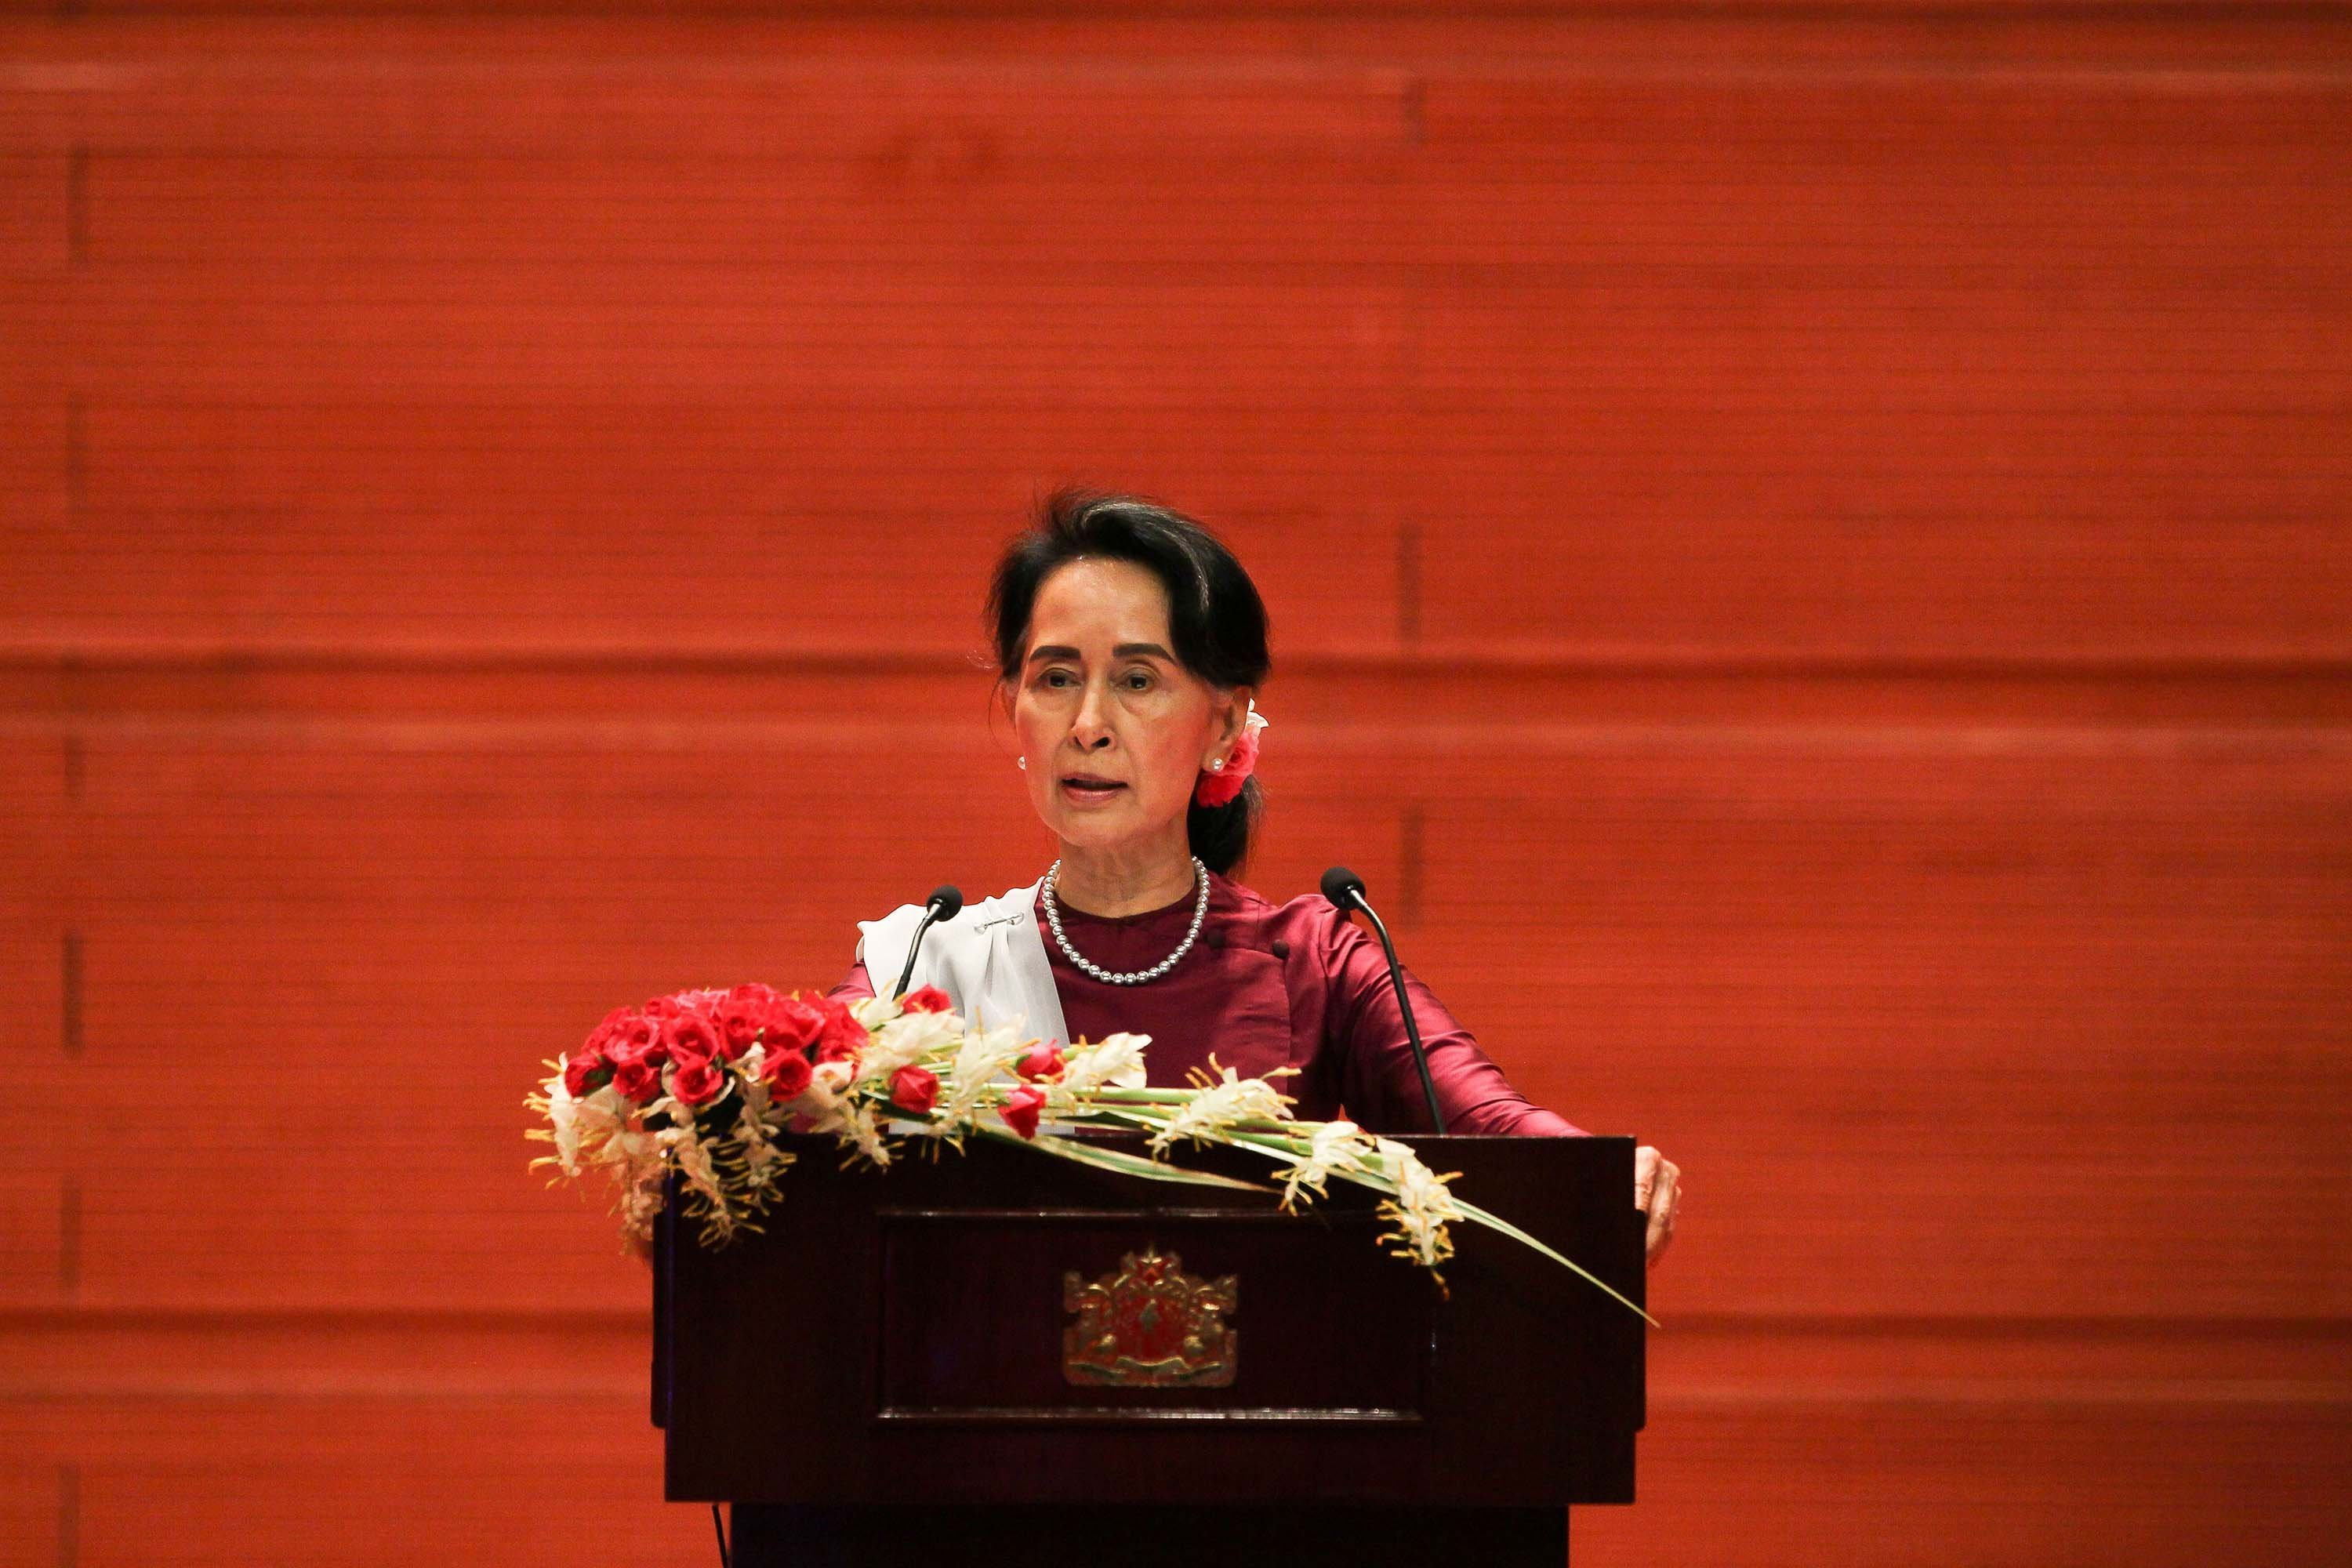 Aung San Suu Kyi, who was once a darling of the international human rights community, has been stripped of another prestigious honor over ongoing violence against Rohingya Muslims in Myanmar's Rakhine State.